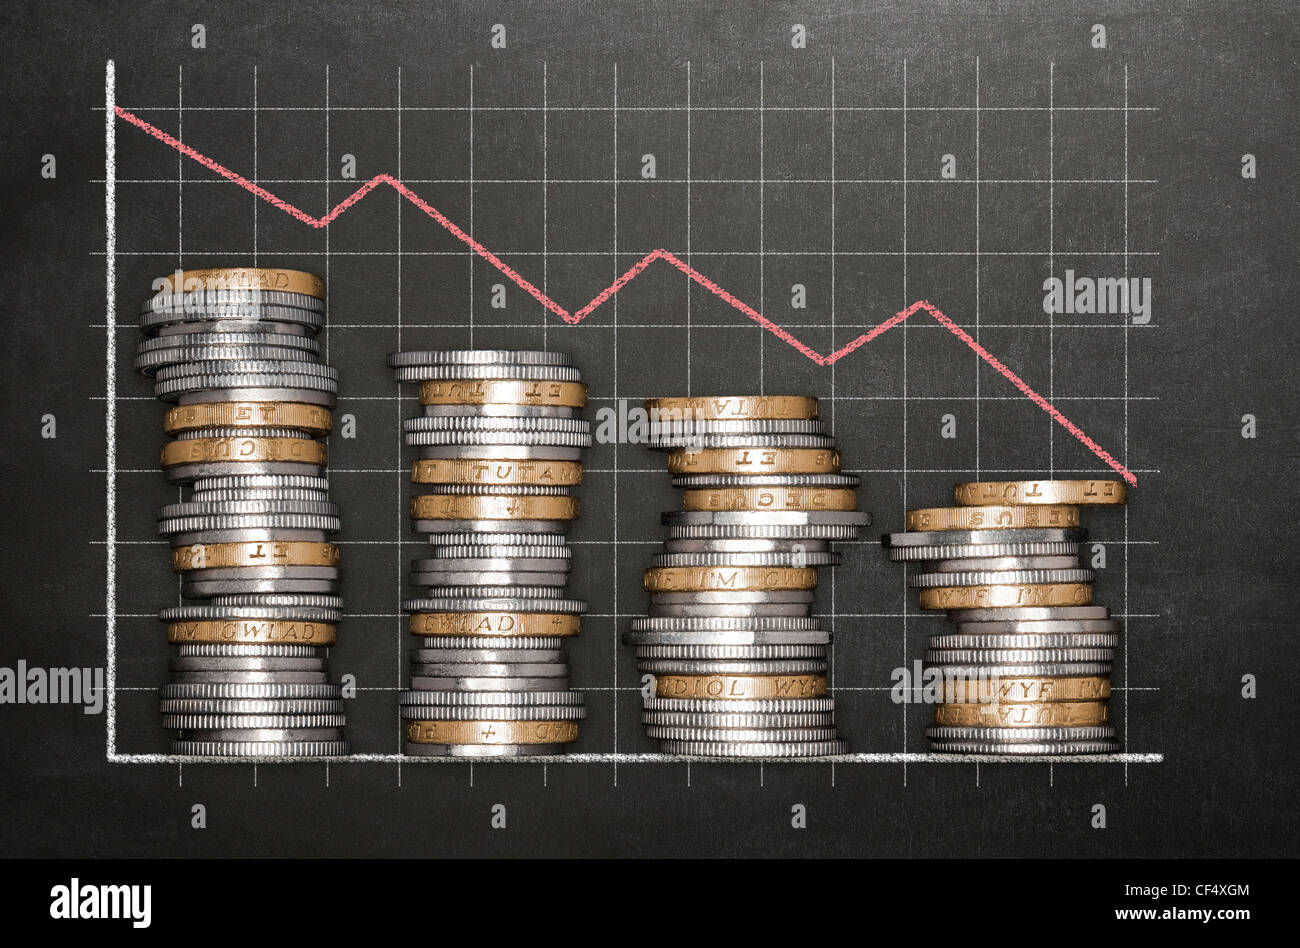 Stacks of coins on a blackboard background forming a graph - Stock Image